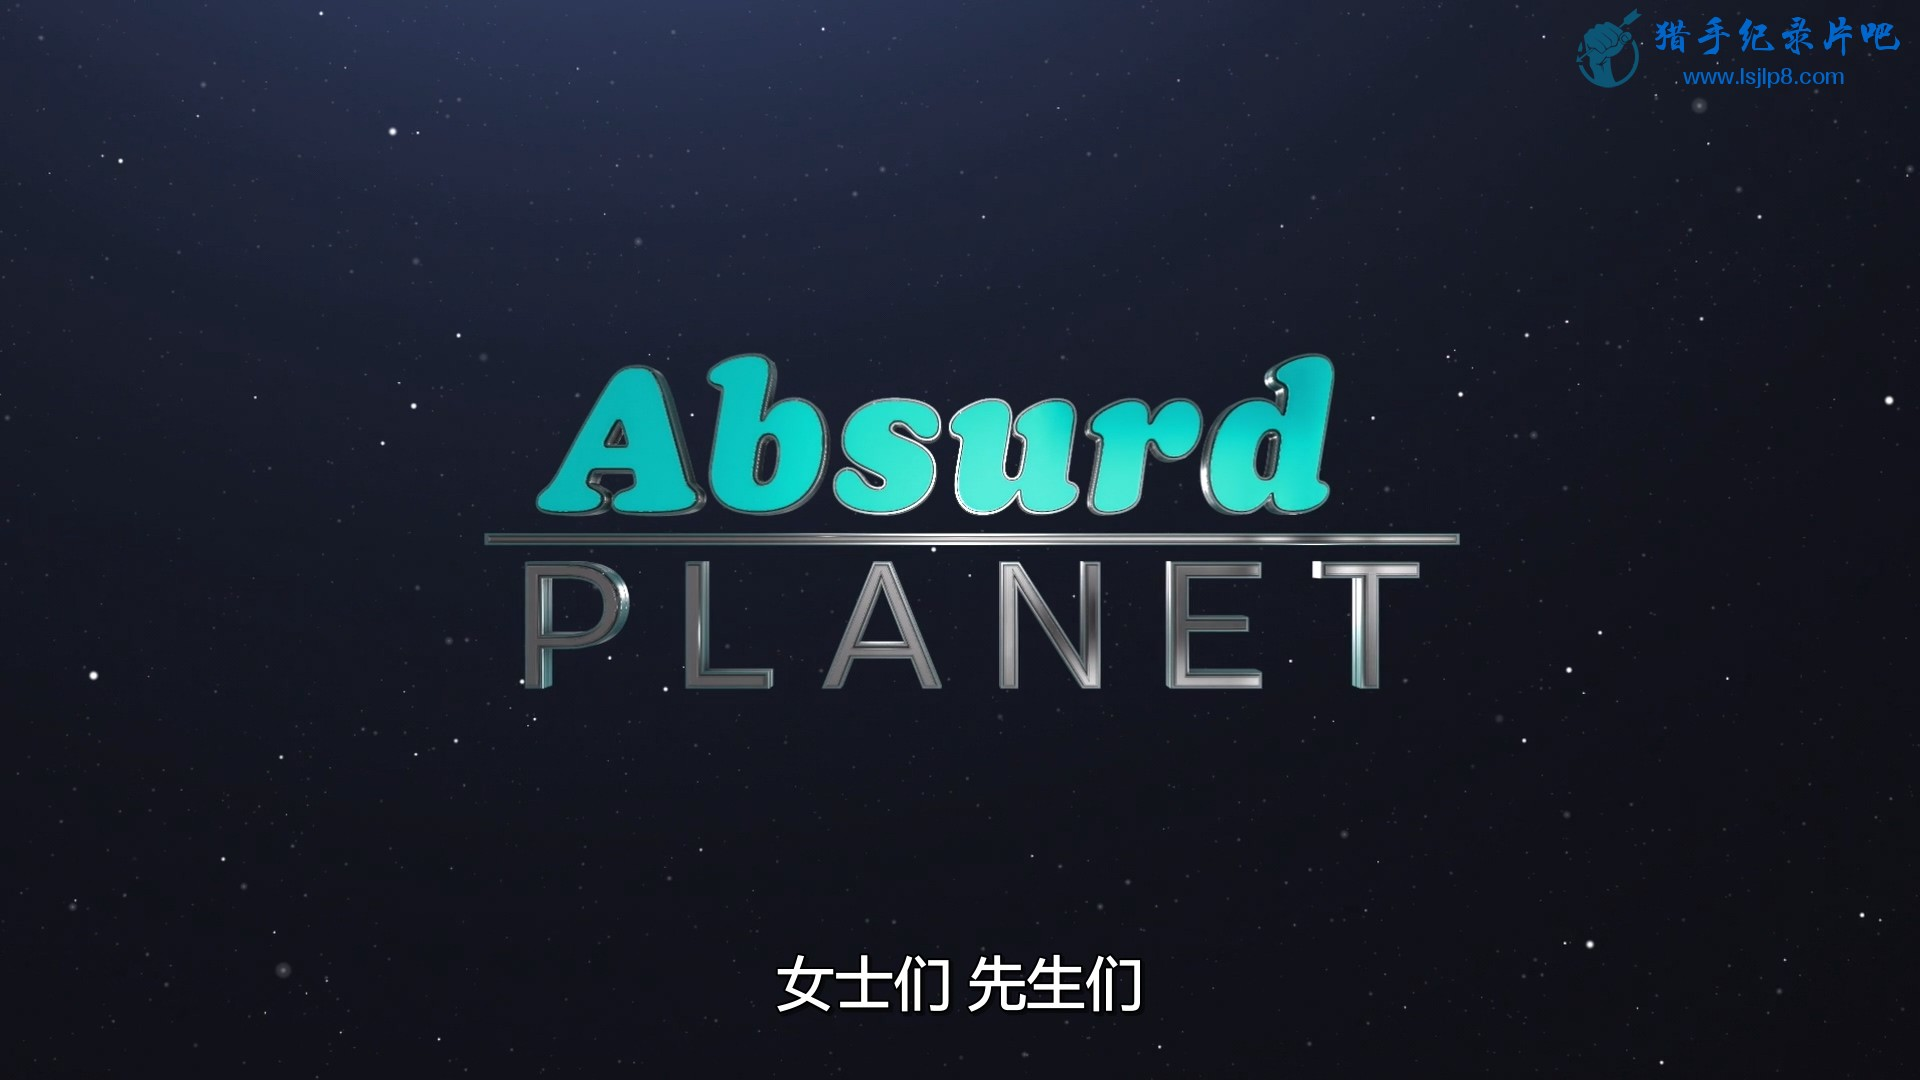 Absurd.Planet.S01E01.Strangest.Things.1080p.NF.WEB-DL.DDP5.1.H.264-NTb.mkv_20200.jpg